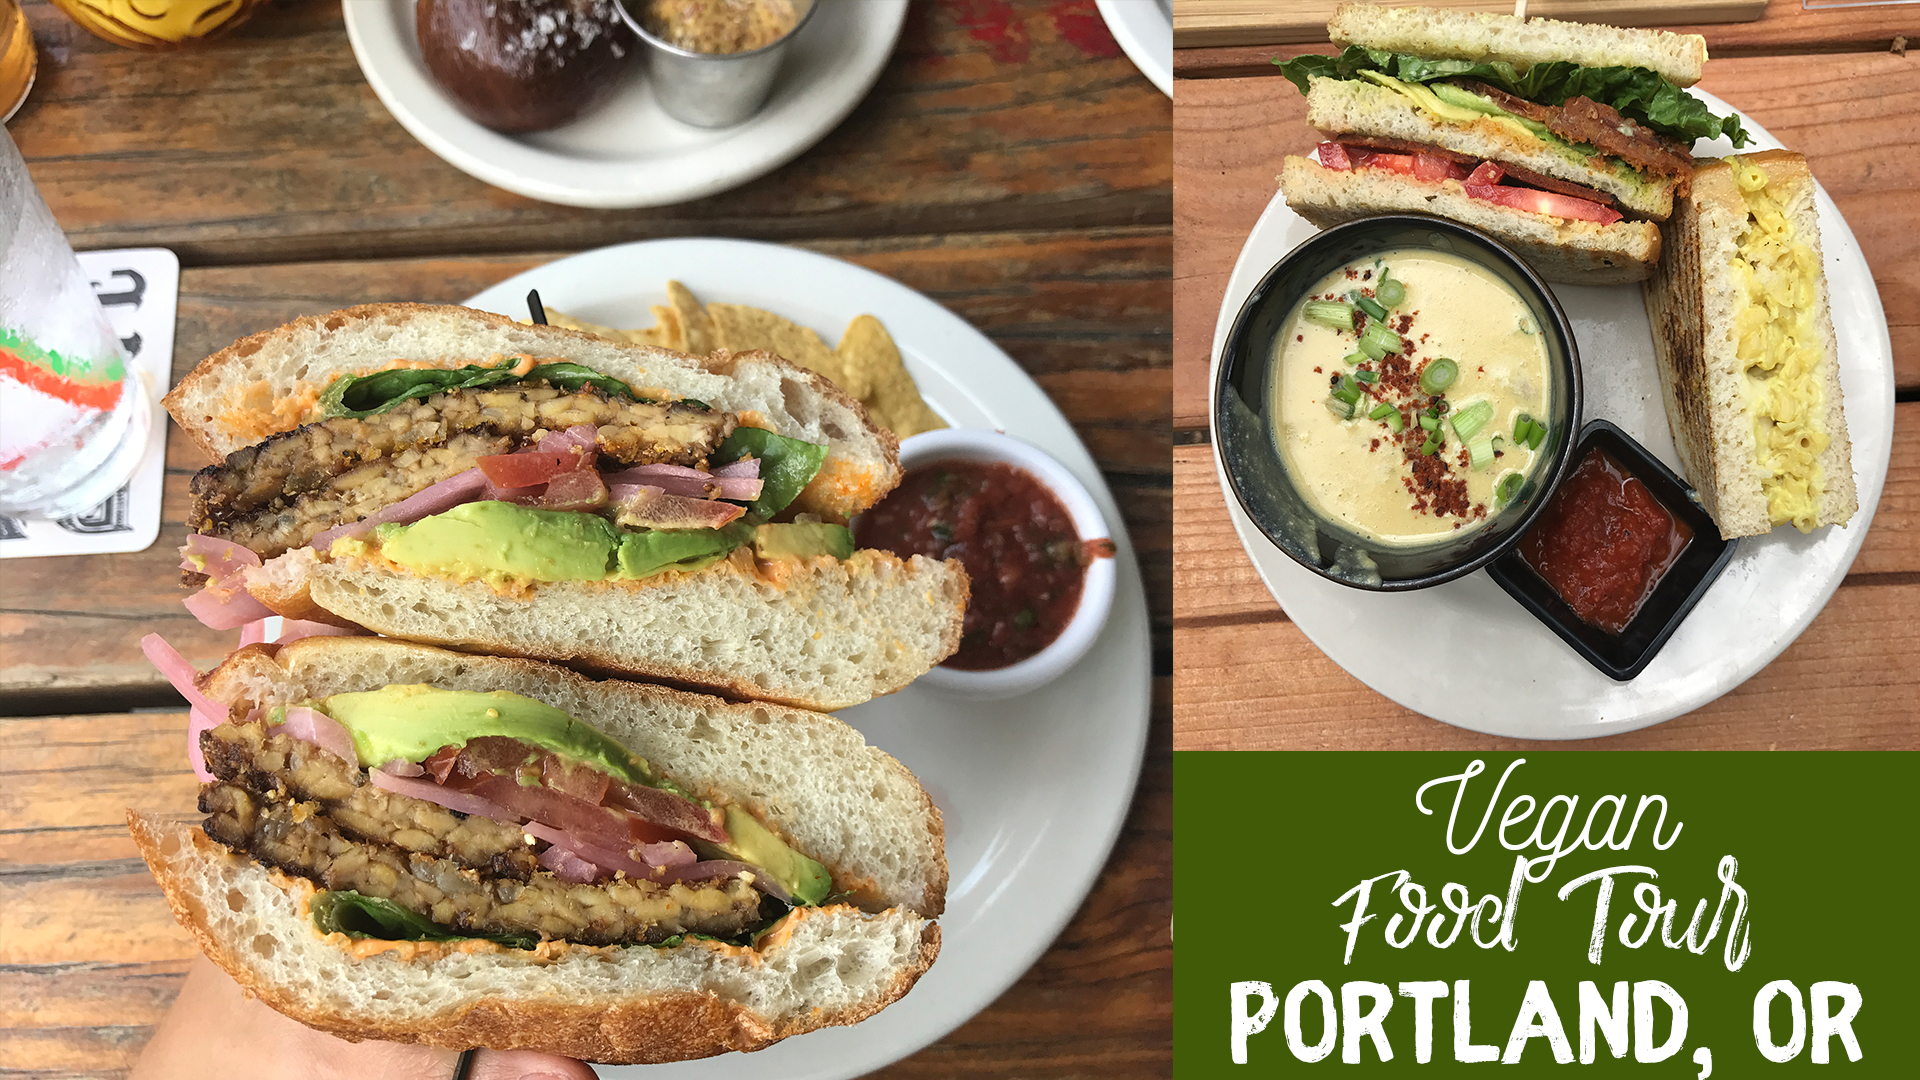 Portland Vegan Food Tour 2017 #portland #vegan sweetsimplevegan.com